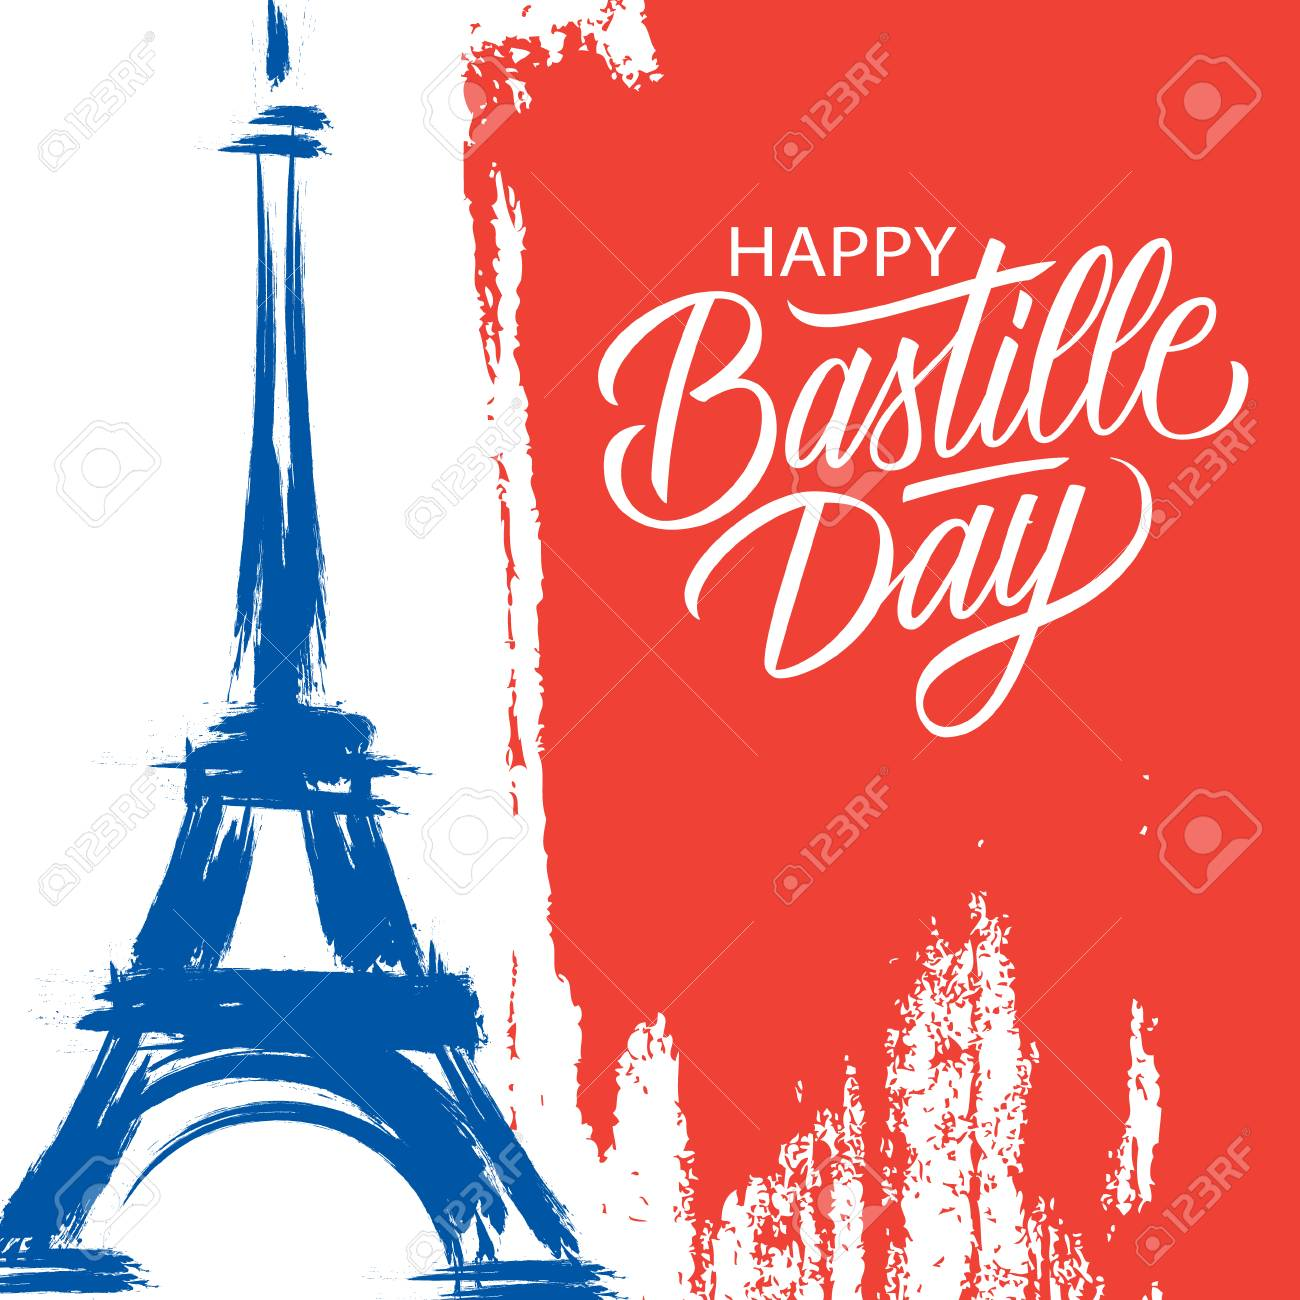 Happy Bastille Day, 14th of July brush stroke holiday greeting card in colors of the national flag of France with Eiffel tower and hand lettering. Vector illustration. - 103593707